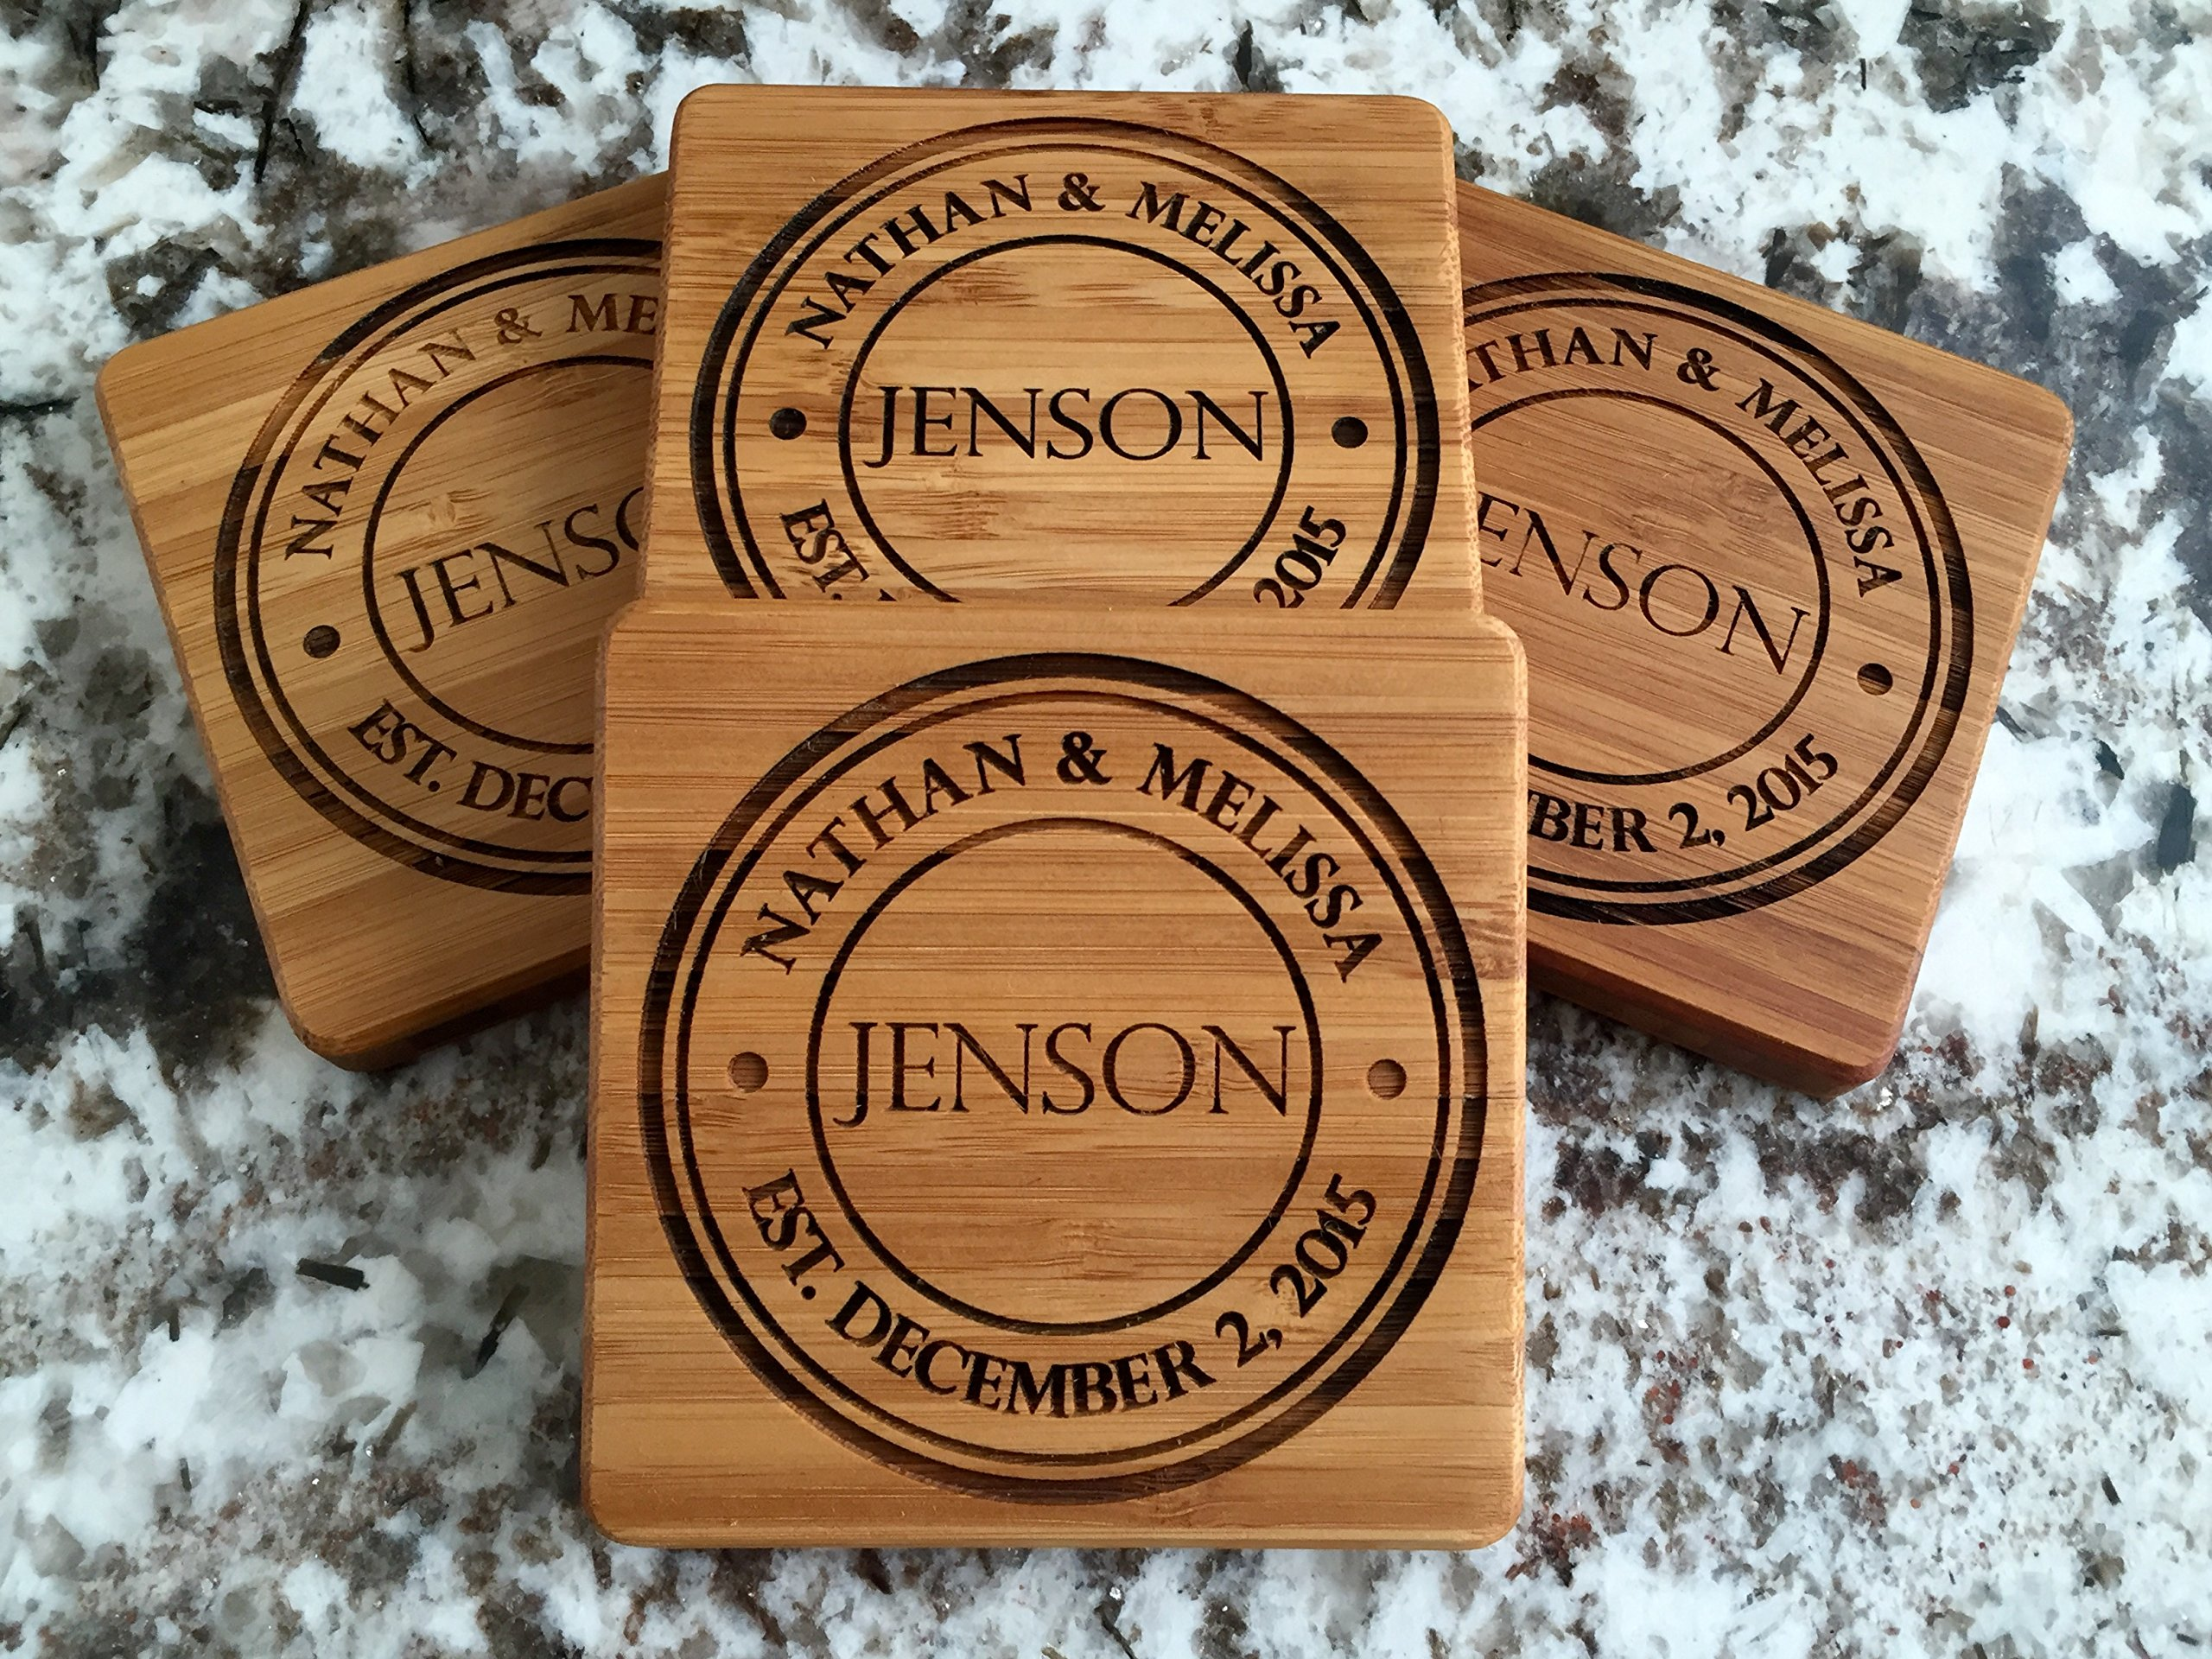 Monogram Wood Coasters for Drinks - Personalized Wedding-Gifts, Bridal Shower-Gifts (Set of 4, Jenson Design) by Qualtry